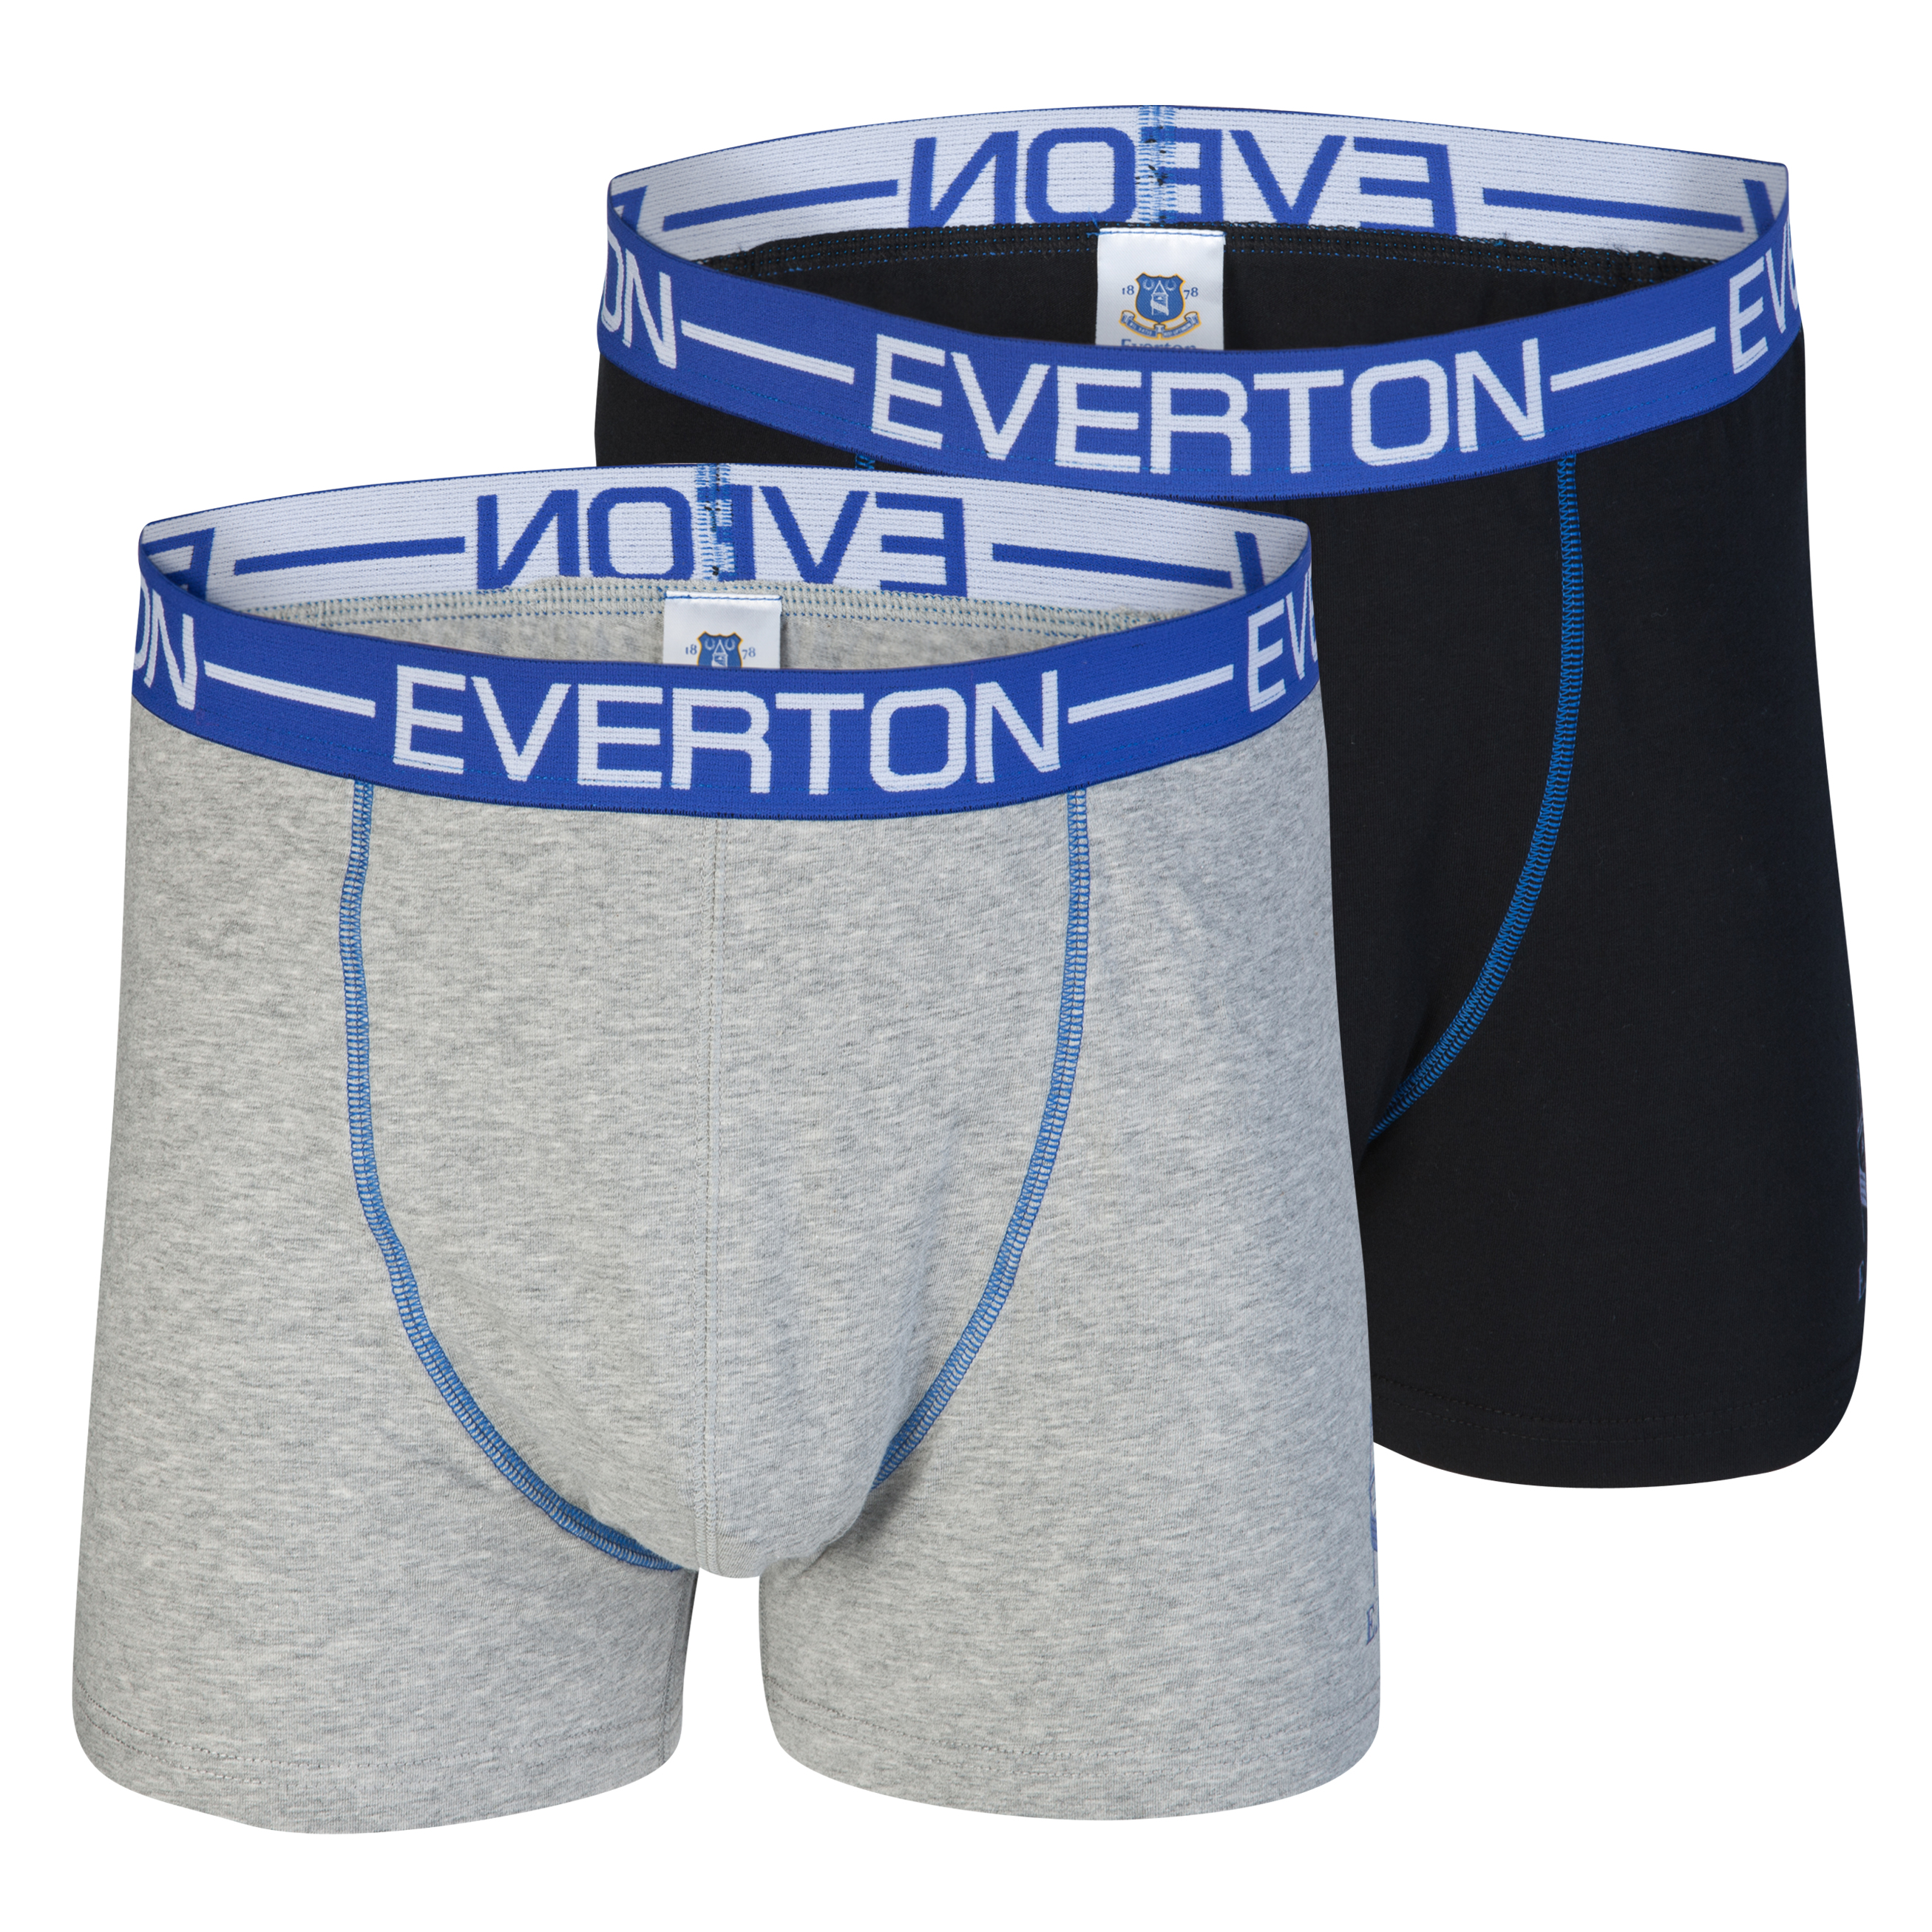 Everton Pack of 2 Boxer Shorts - Black/Grey